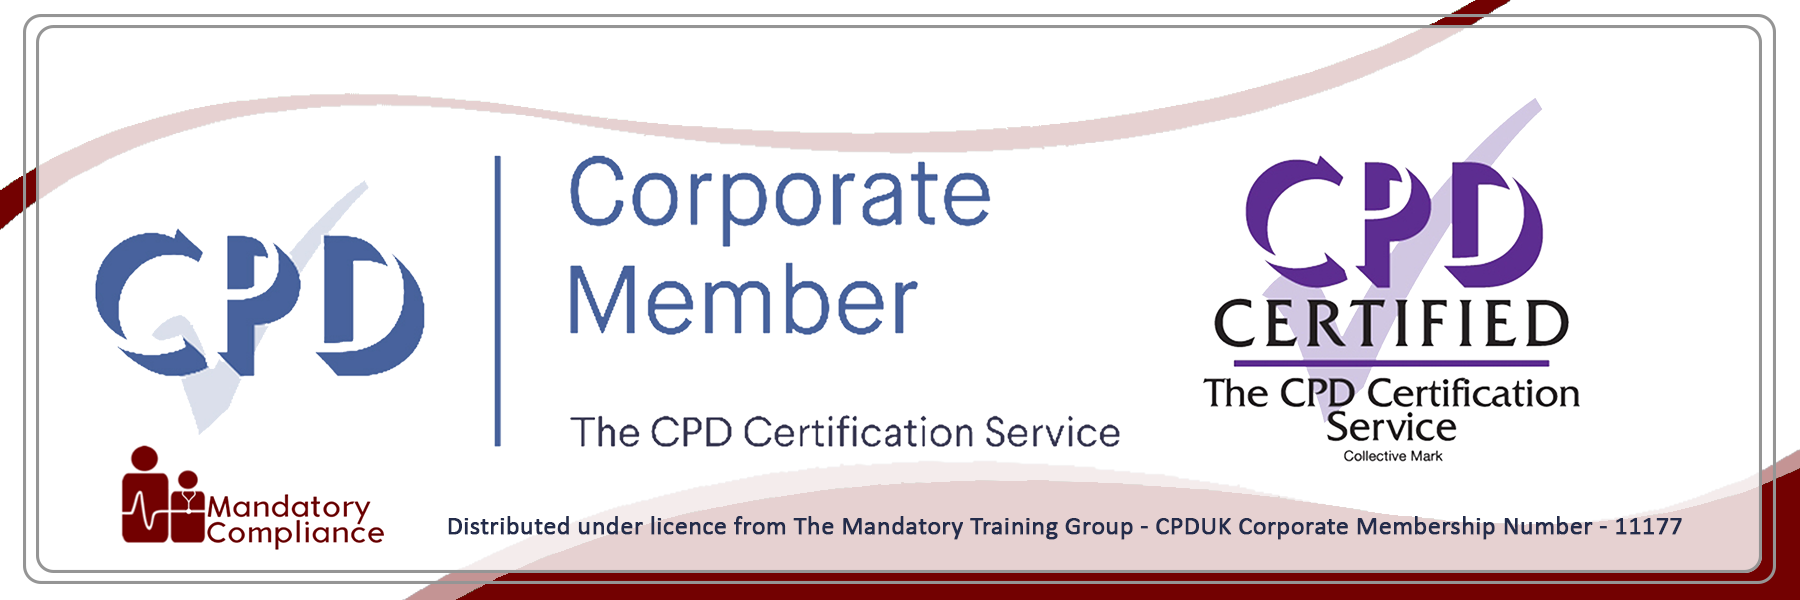 Developing Creativity - Online Training Course - CPDUK Accredited - Mandatory Compliance UK -